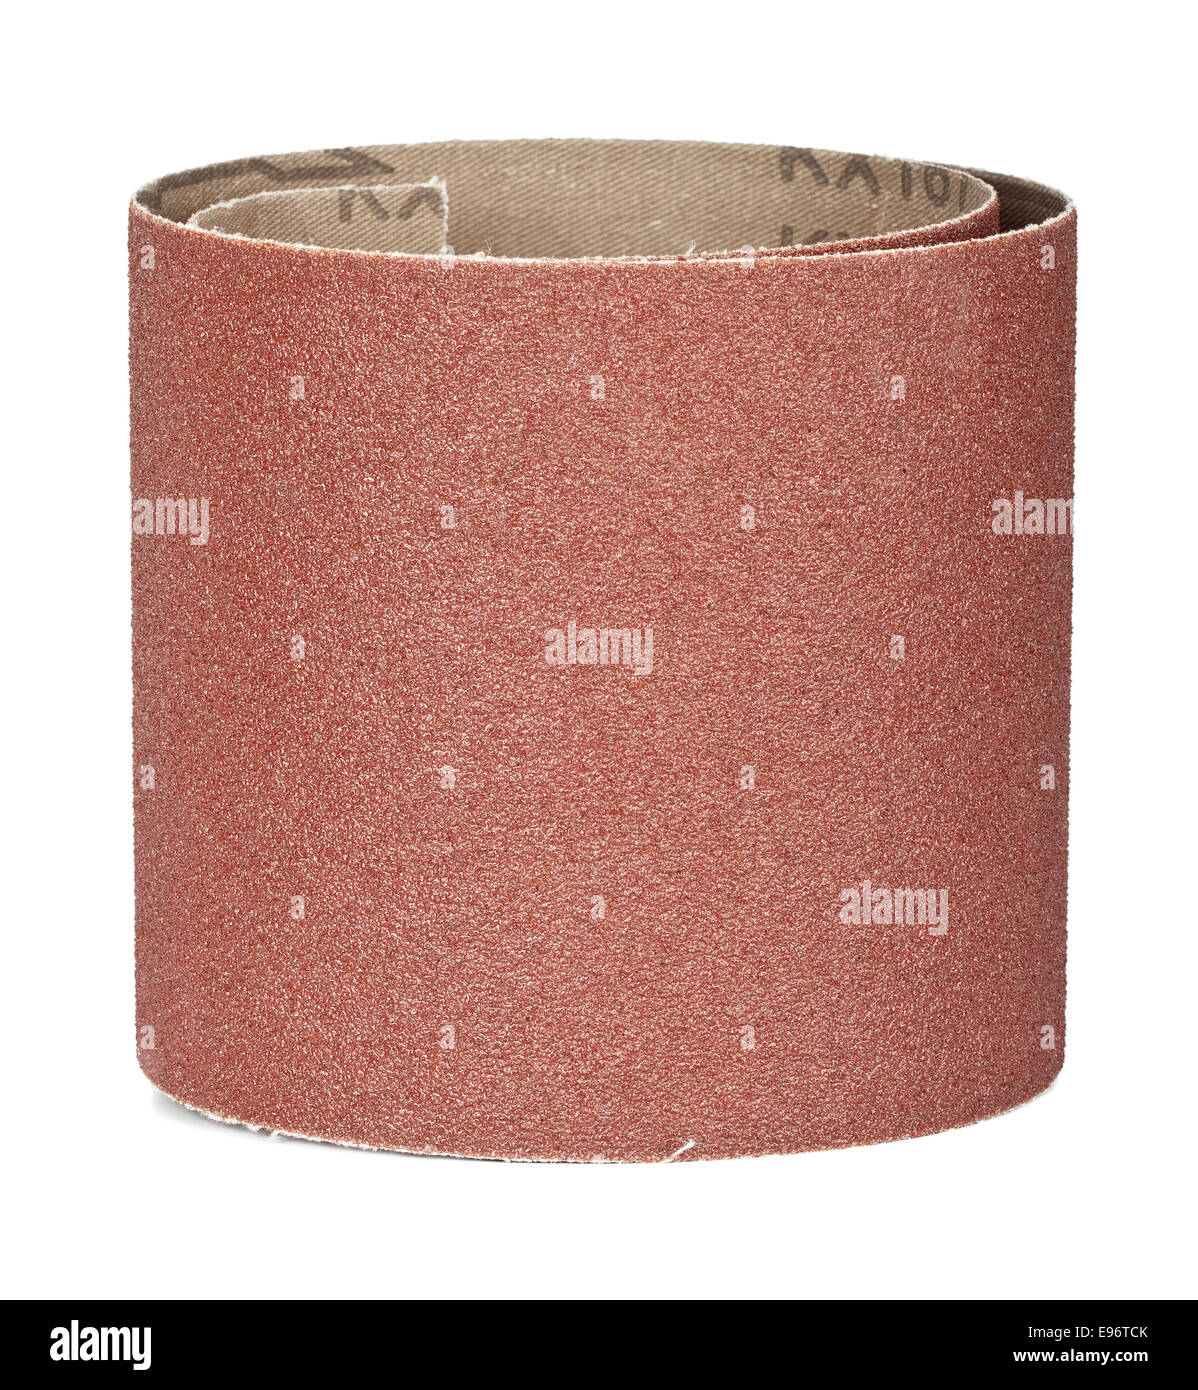 brown sandpaper for your woodwork - Stock Image